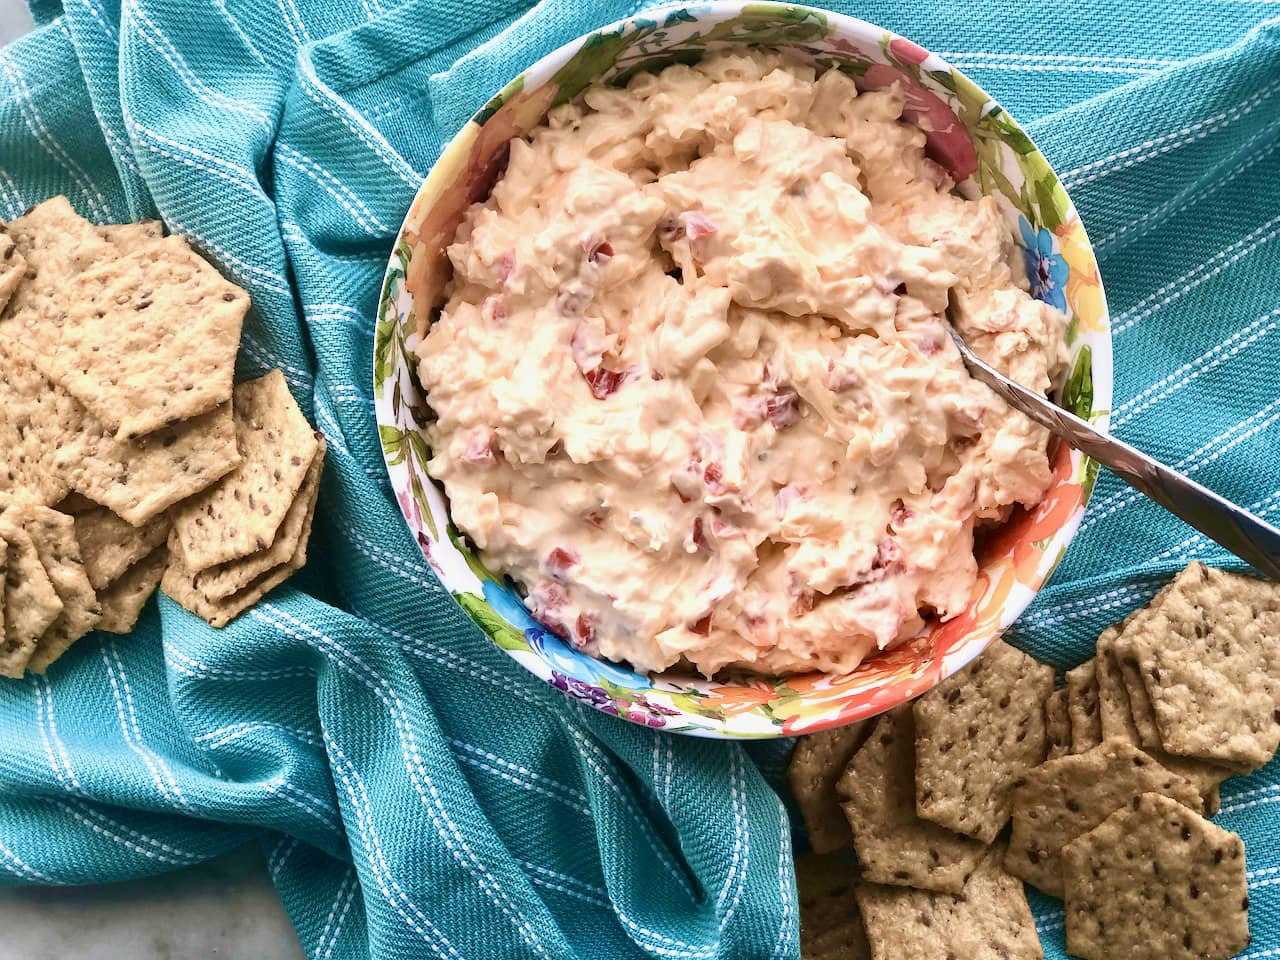 Smoked Pimento-Jack Cheese in a floral bowl with crackers